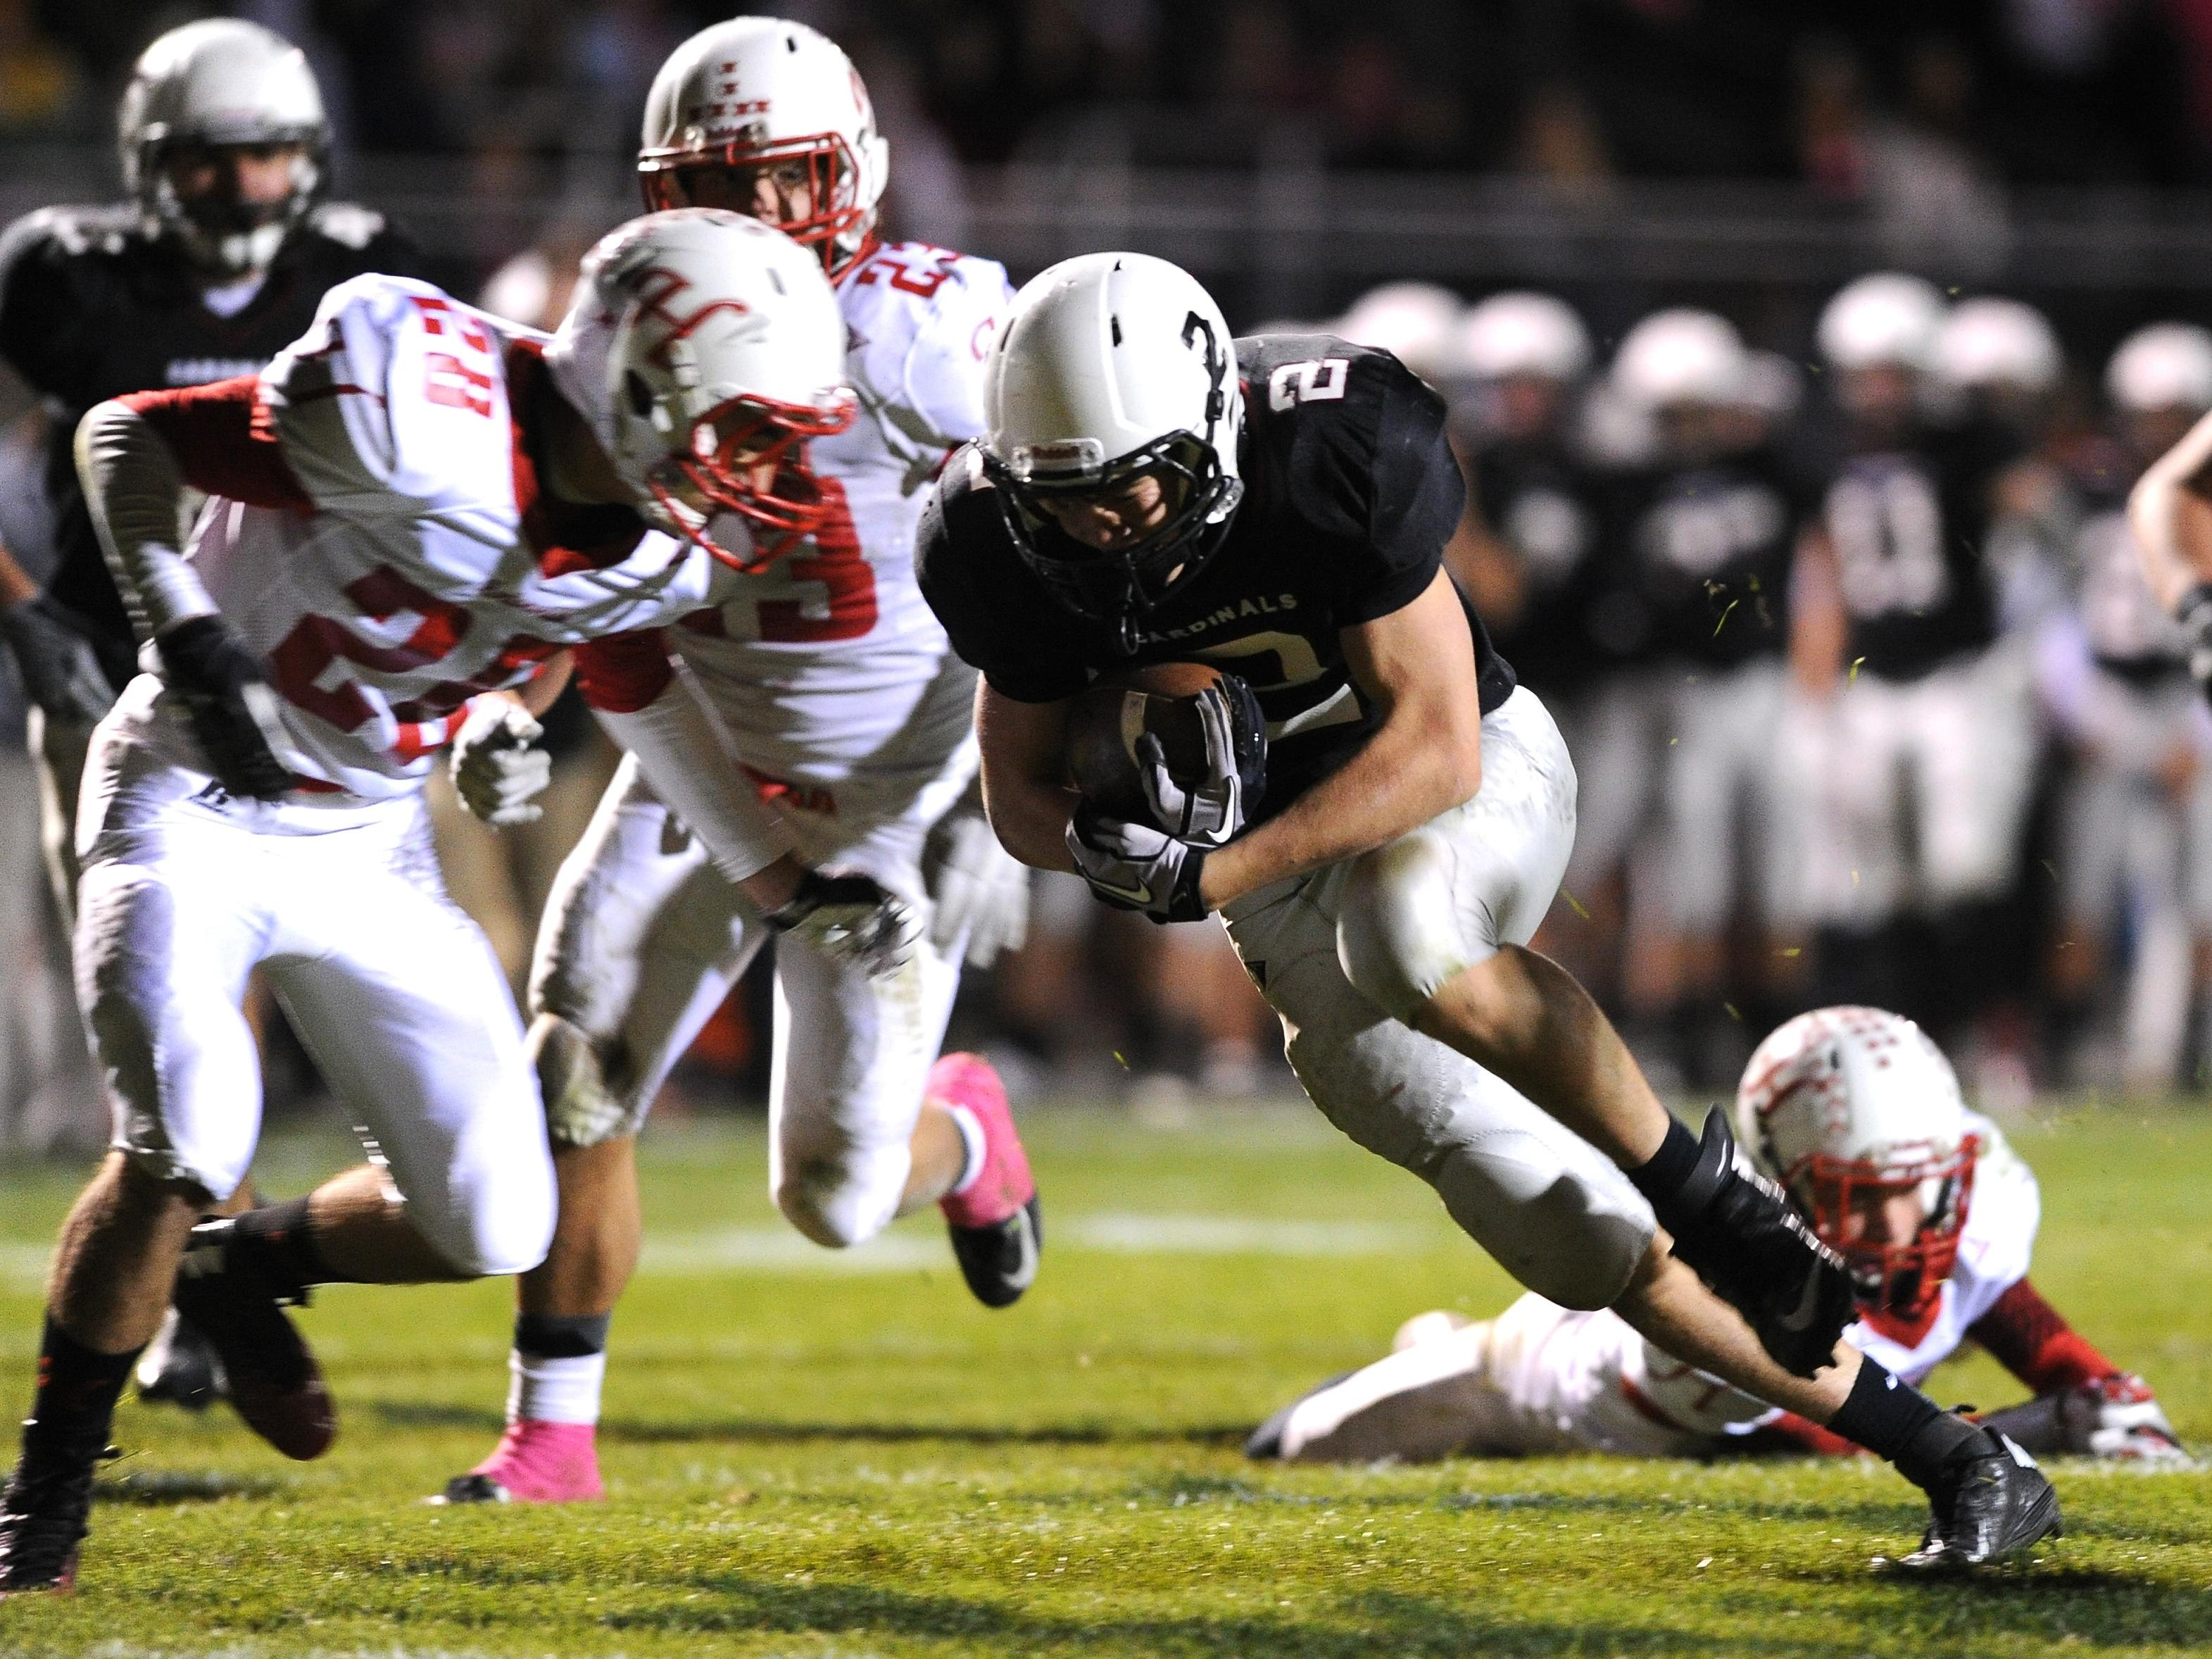 Fond du Lac's Justin Maratik runs with the ball in a game last year. Maratik will be a key piece for the Cardinals in 2015.